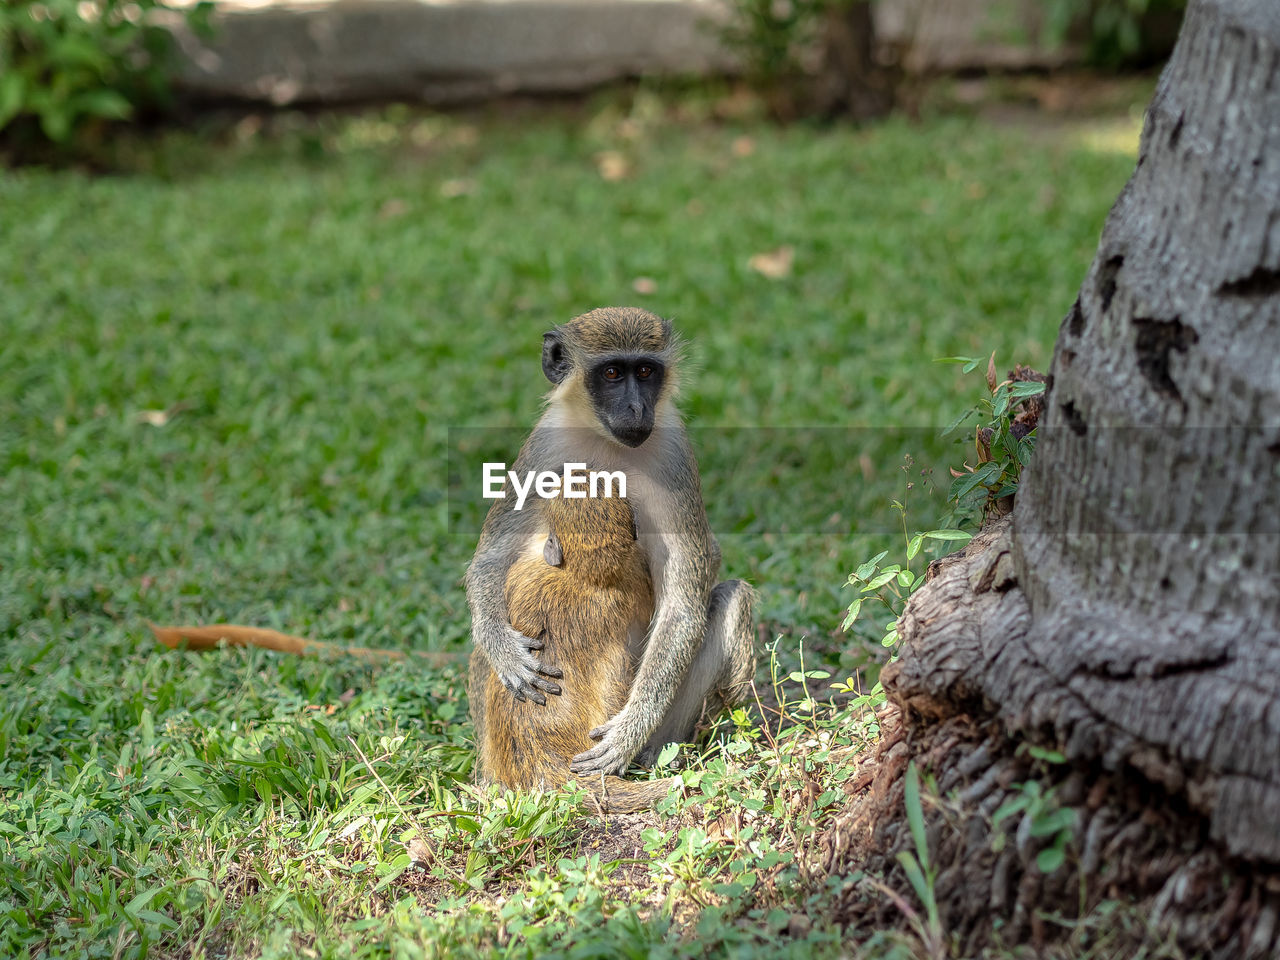 animal wildlife, animals in the wild, mammal, vertebrate, plant, one animal, primate, day, no people, nature, tree, land, focus on foreground, sitting, field, outdoors, animal family, care